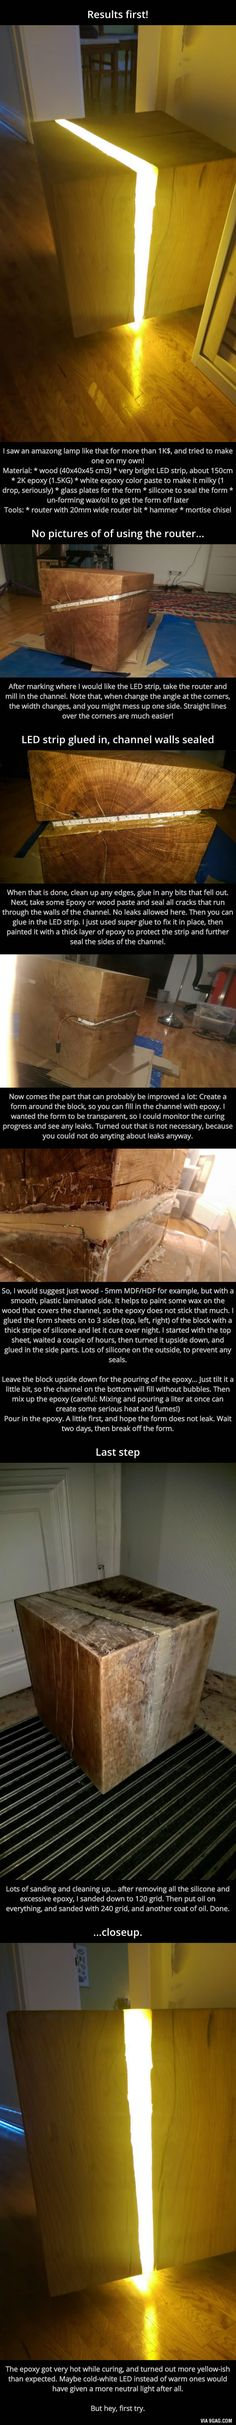 Oak and Epoxy LED lamp - 9GAG